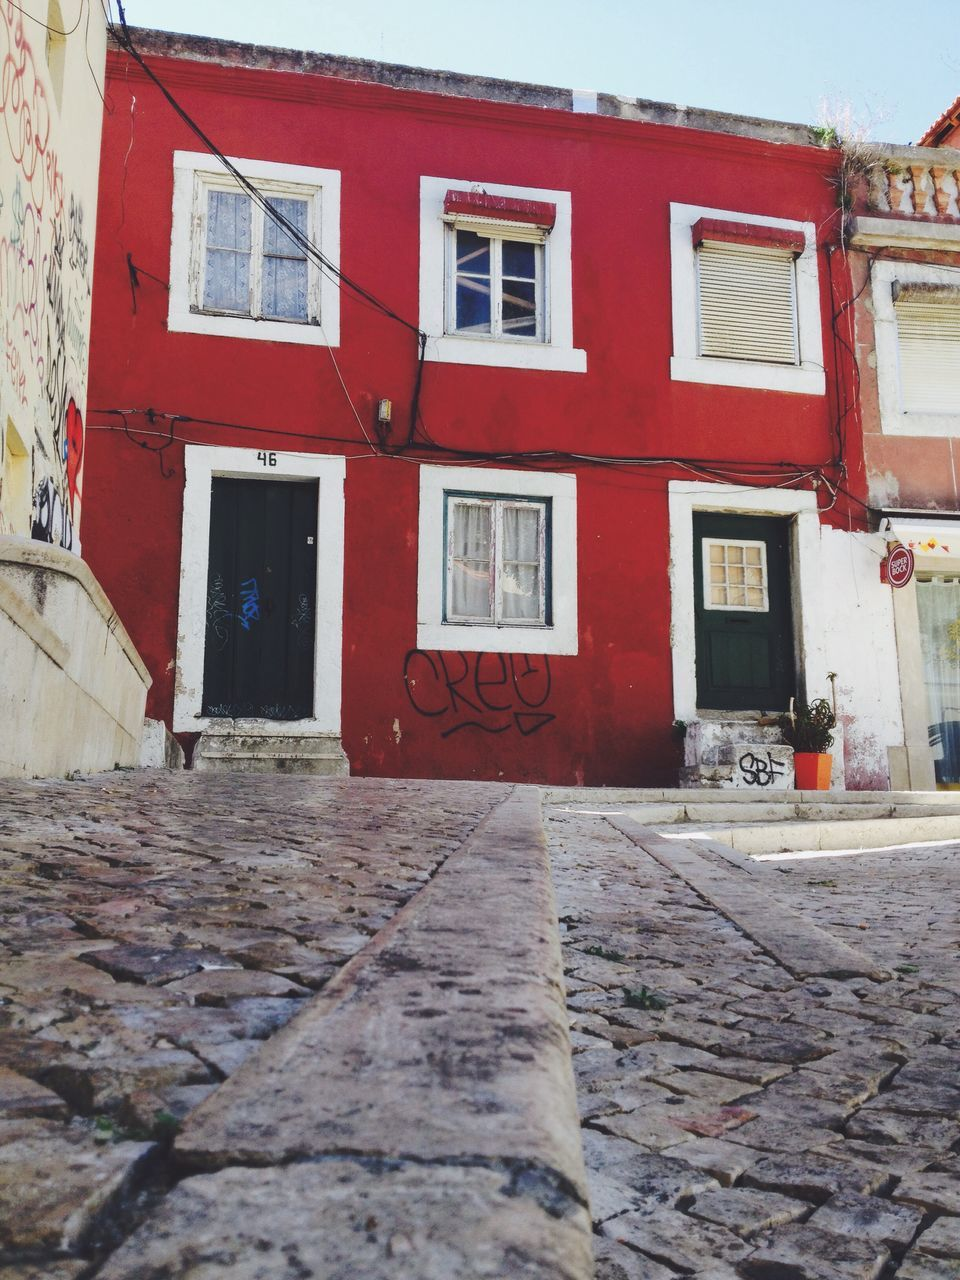 architecture, building exterior, built structure, house, window, outdoors, red, no people, residential building, day, city